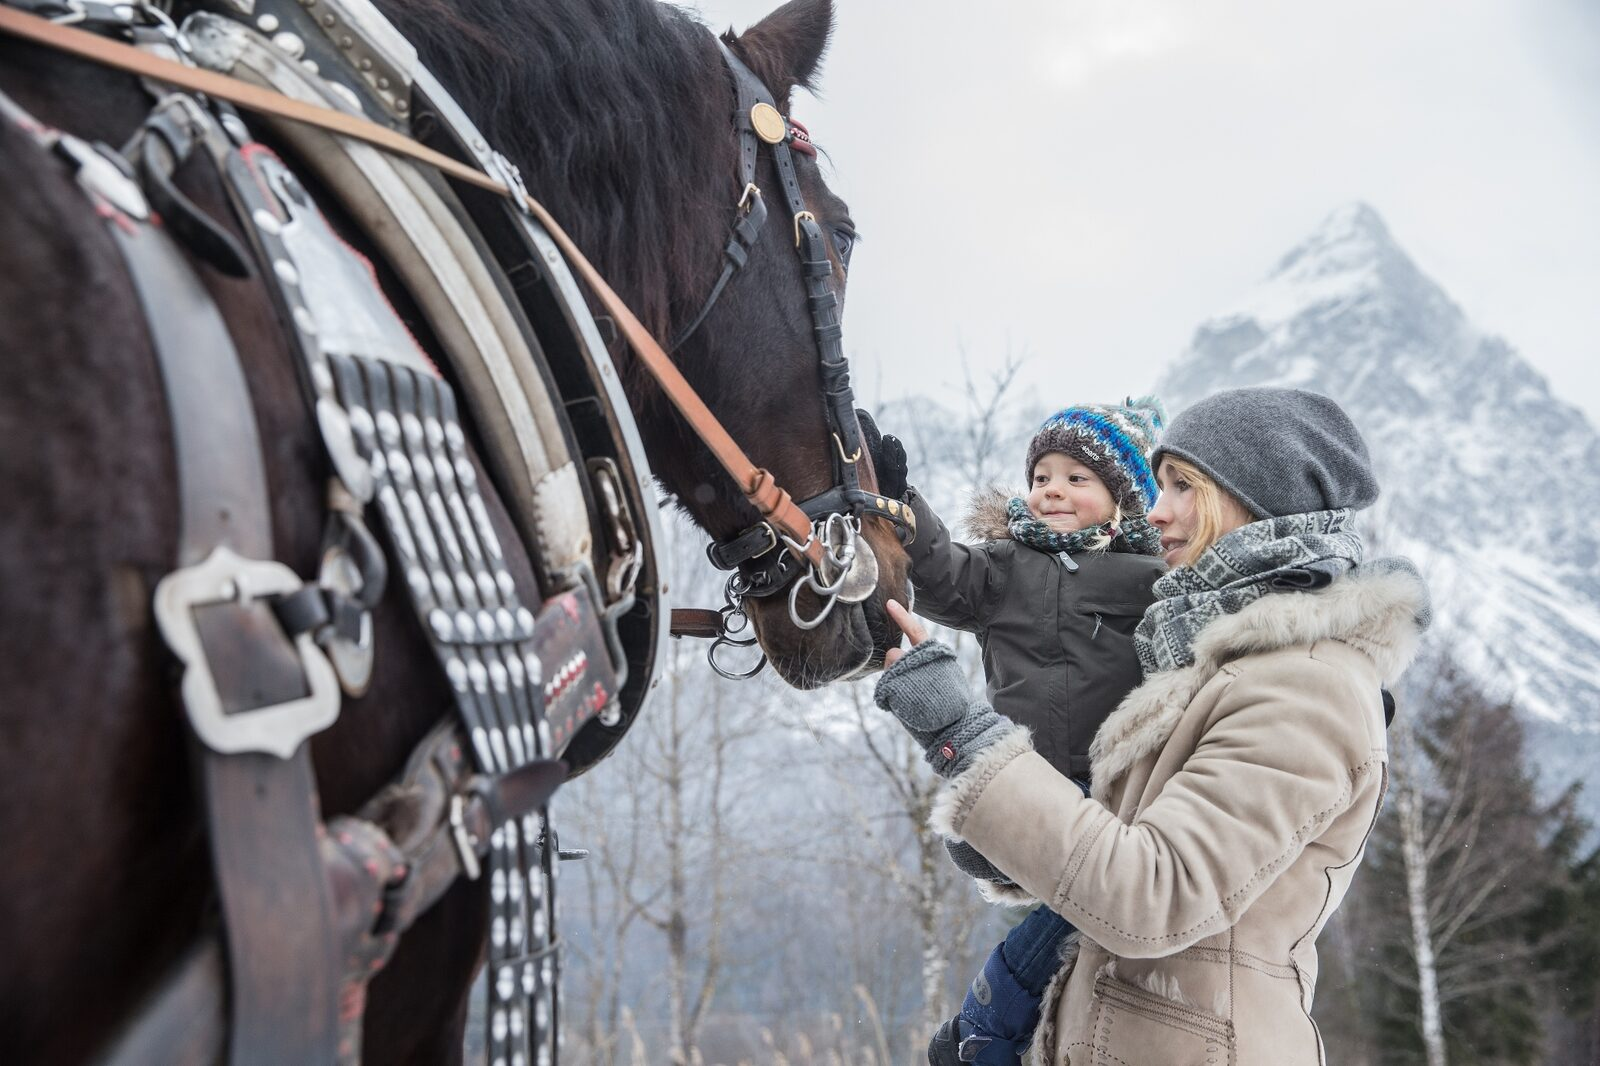 Horse sleigh ride through nature